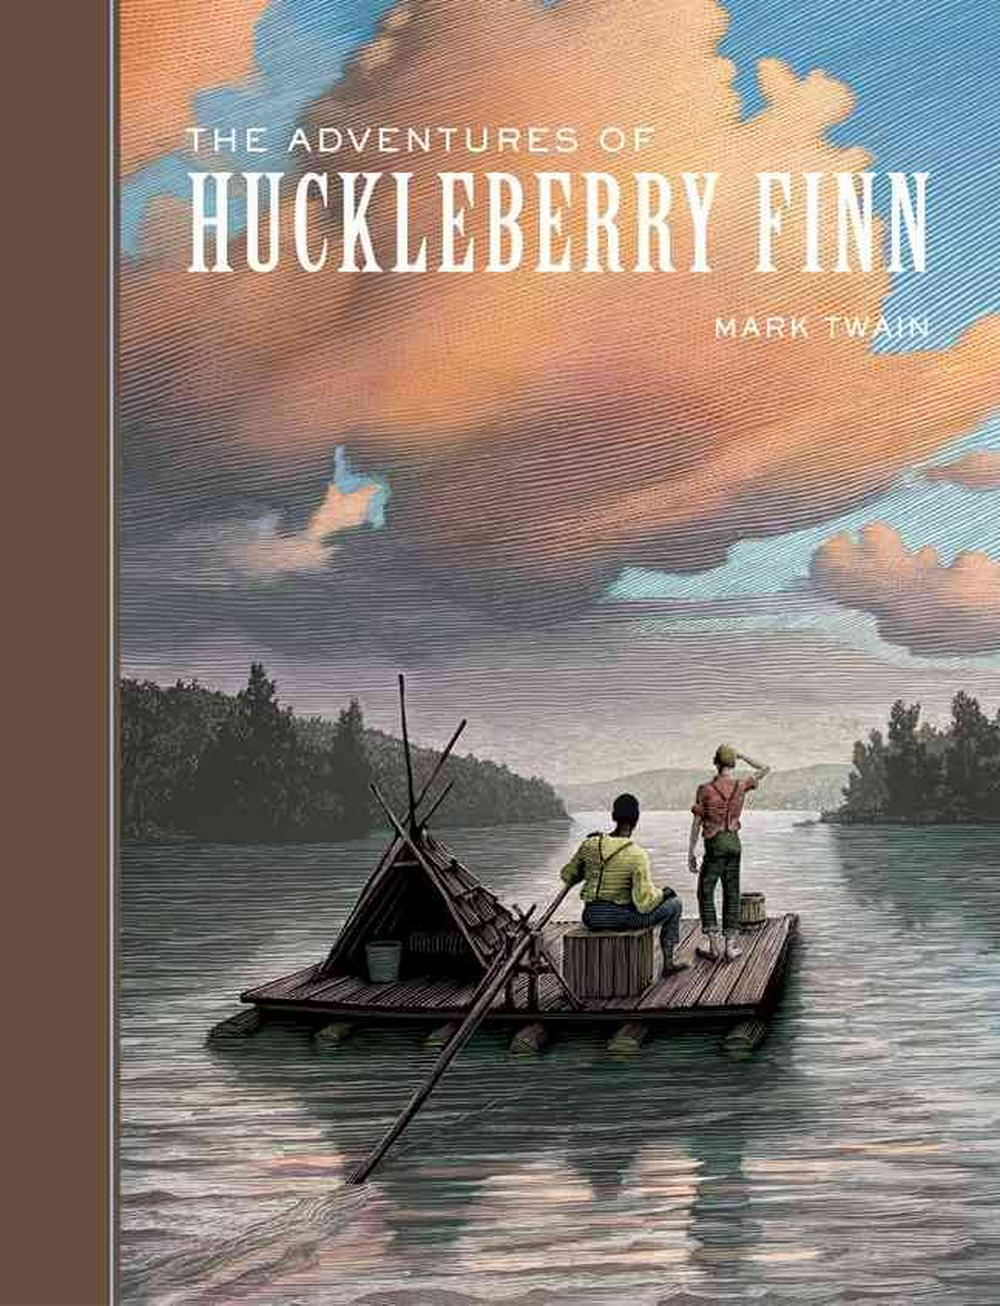 a book report on mark twains novel the adventures of huckleberry finn Research paper on twain's adventures of huckleberry finn mark twain's adventures of huckleberry finn is a novel about a young boy's coming of age in the missouri of the mid-1800's.